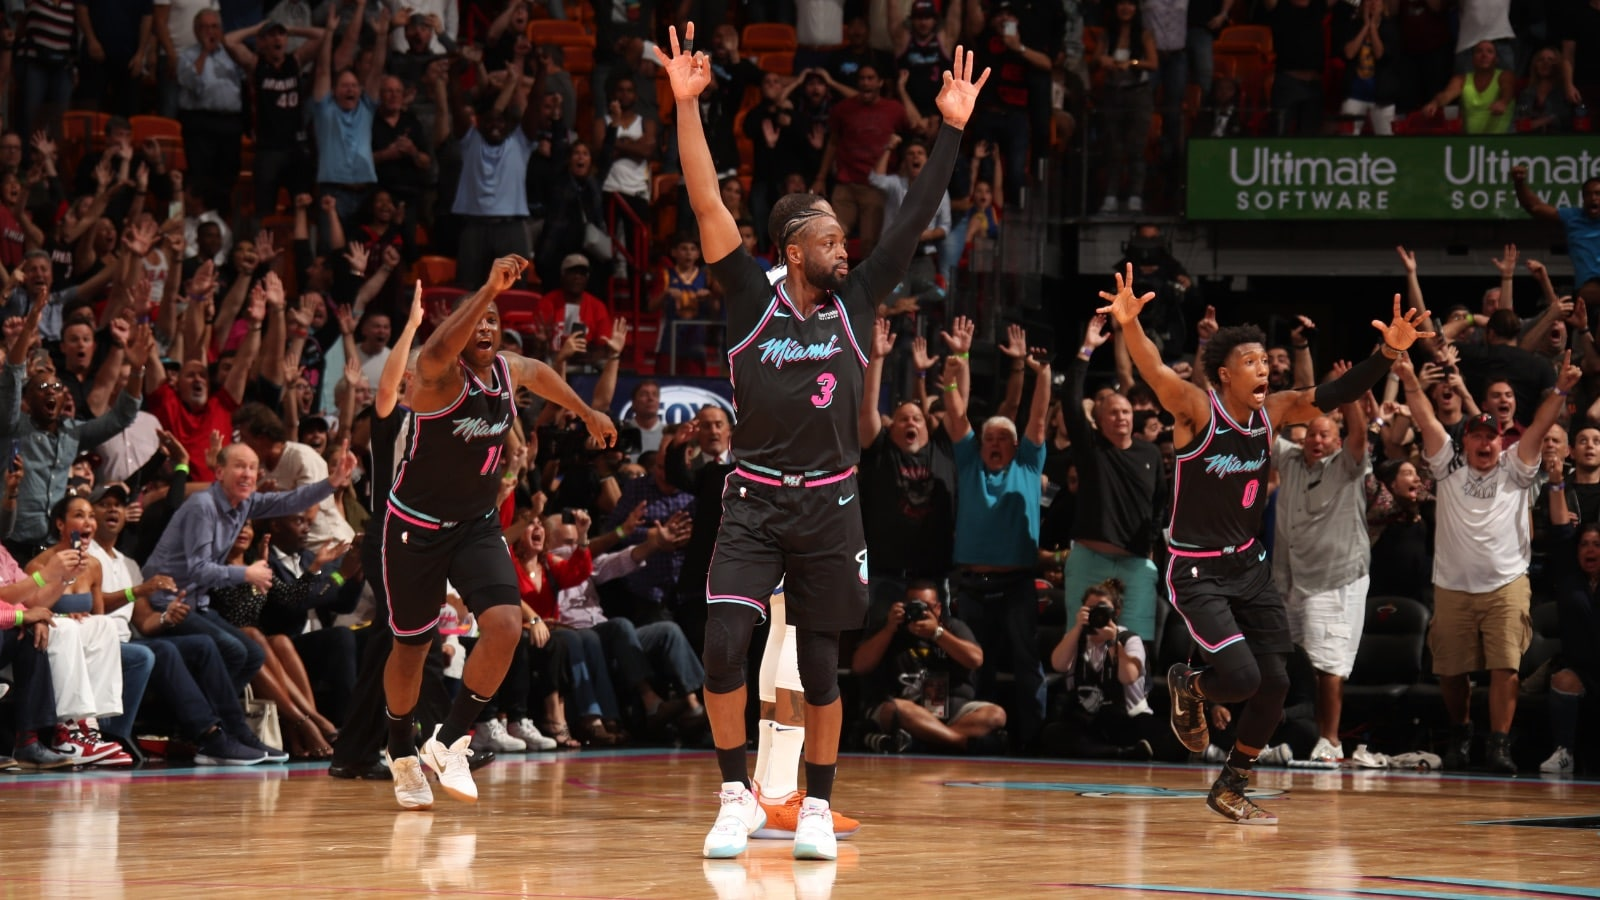 Dwyane Wade celebrates after a game-winning shot